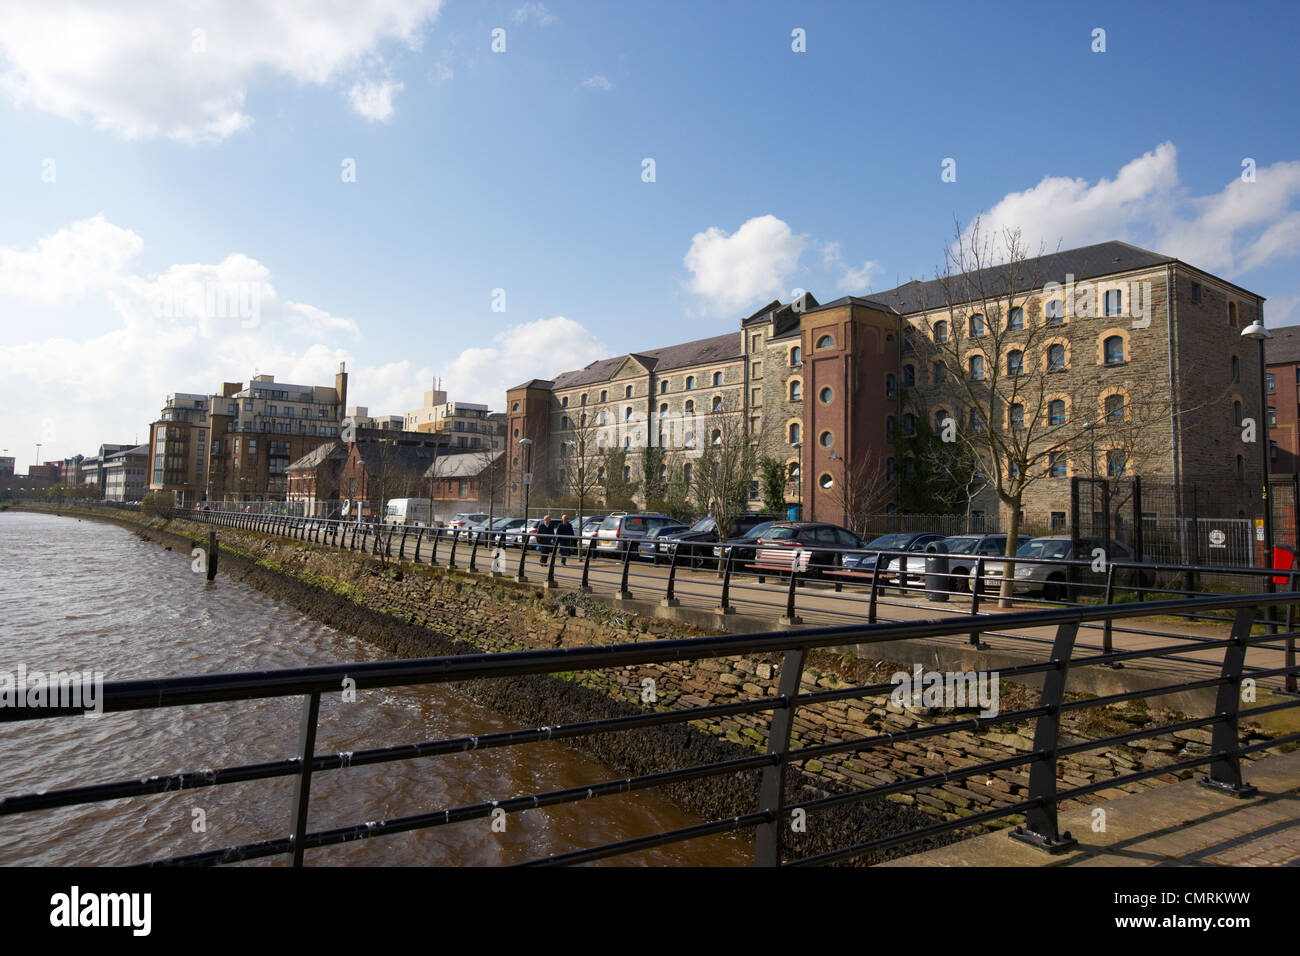 rock mills by the river foyle former flour mills building converted to student accommodation use in Derry city county - Stock Image